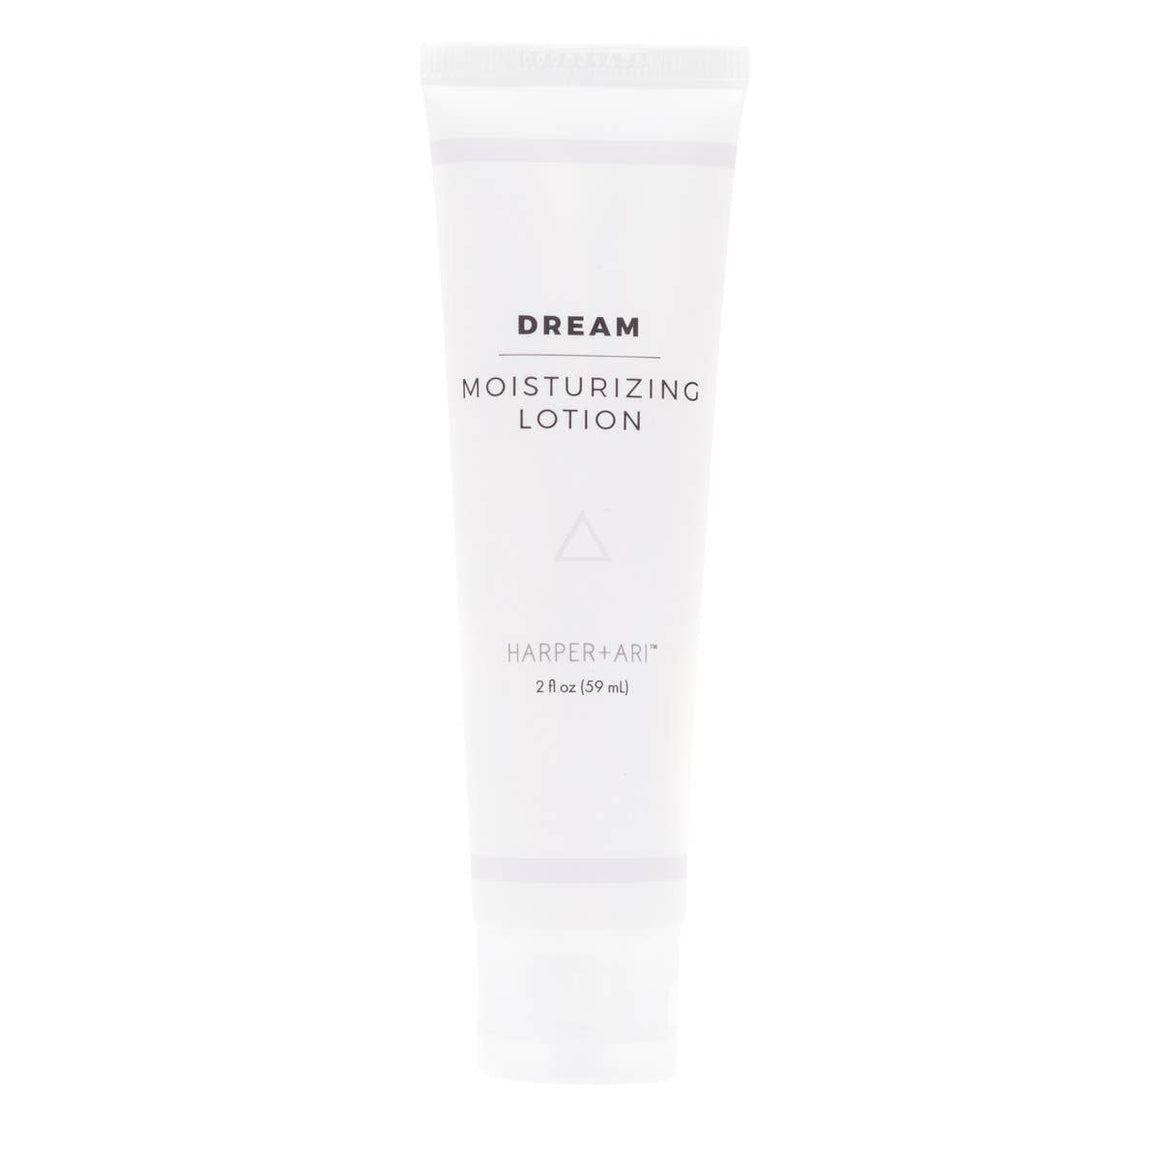 Moisturizing Lotion - 2 oz